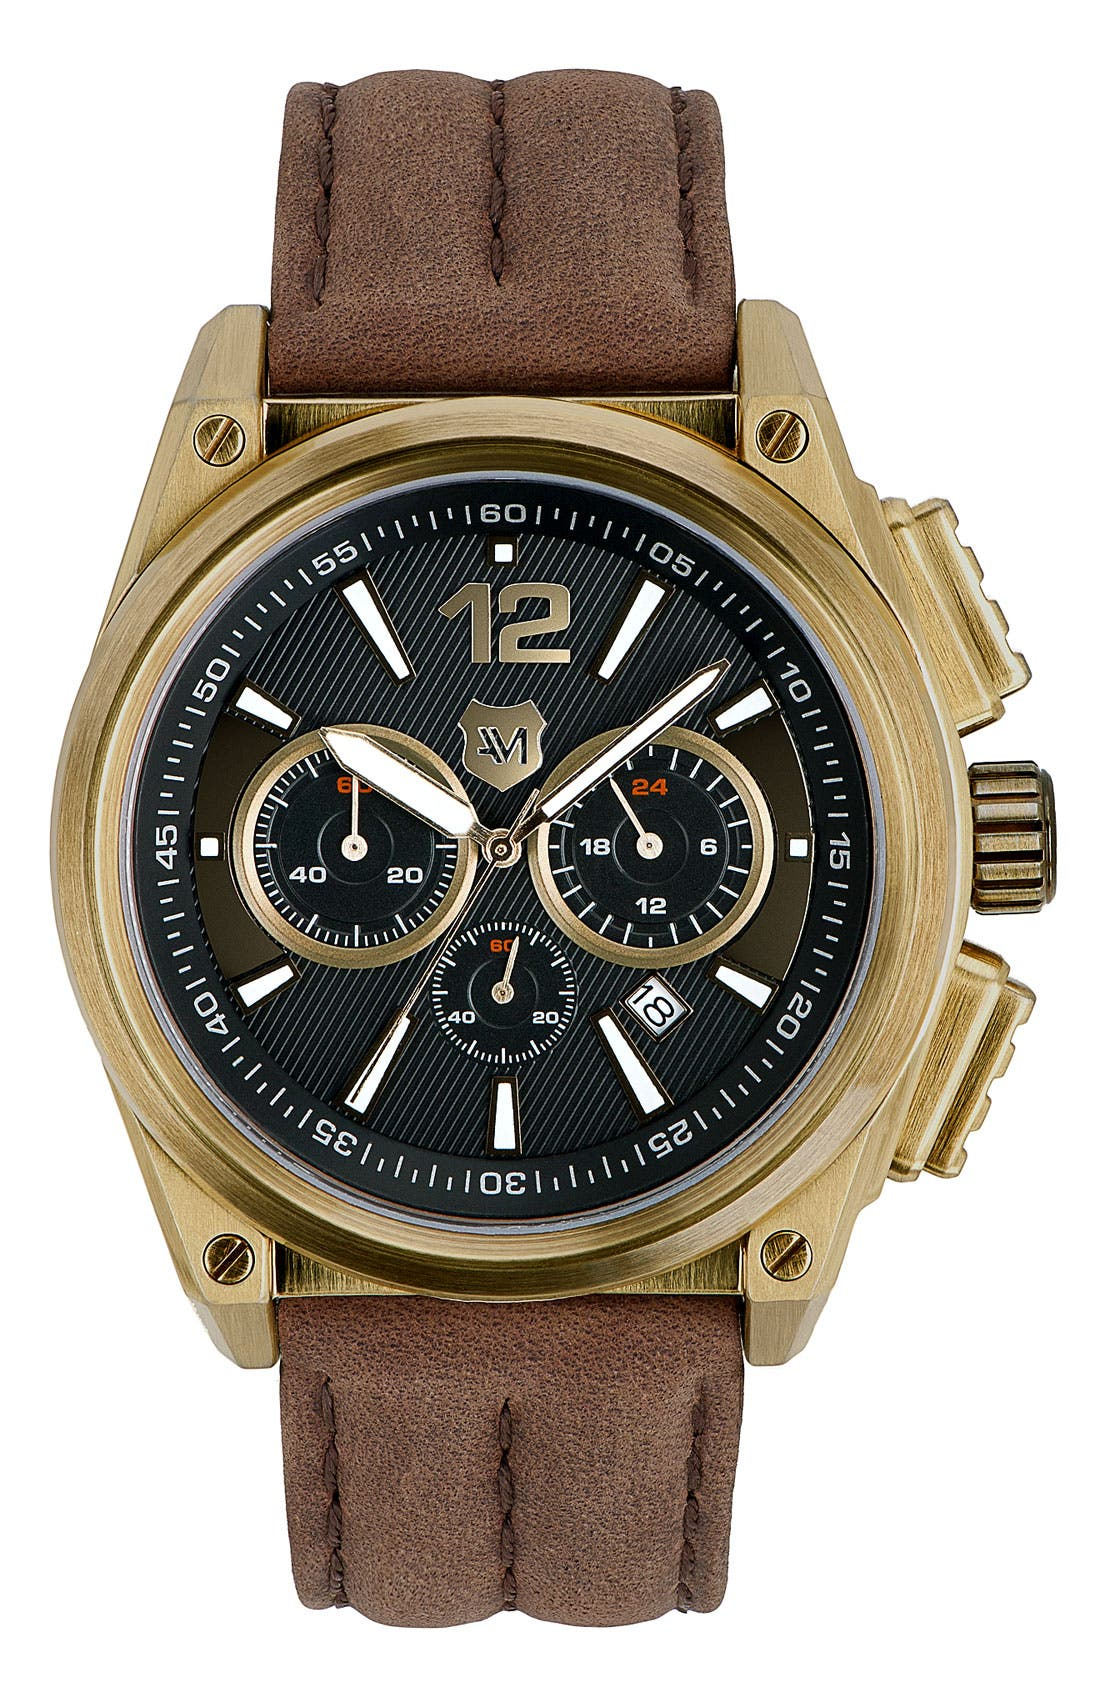 Main Image - Andrew Marc Watches Round Leather Strap Watch